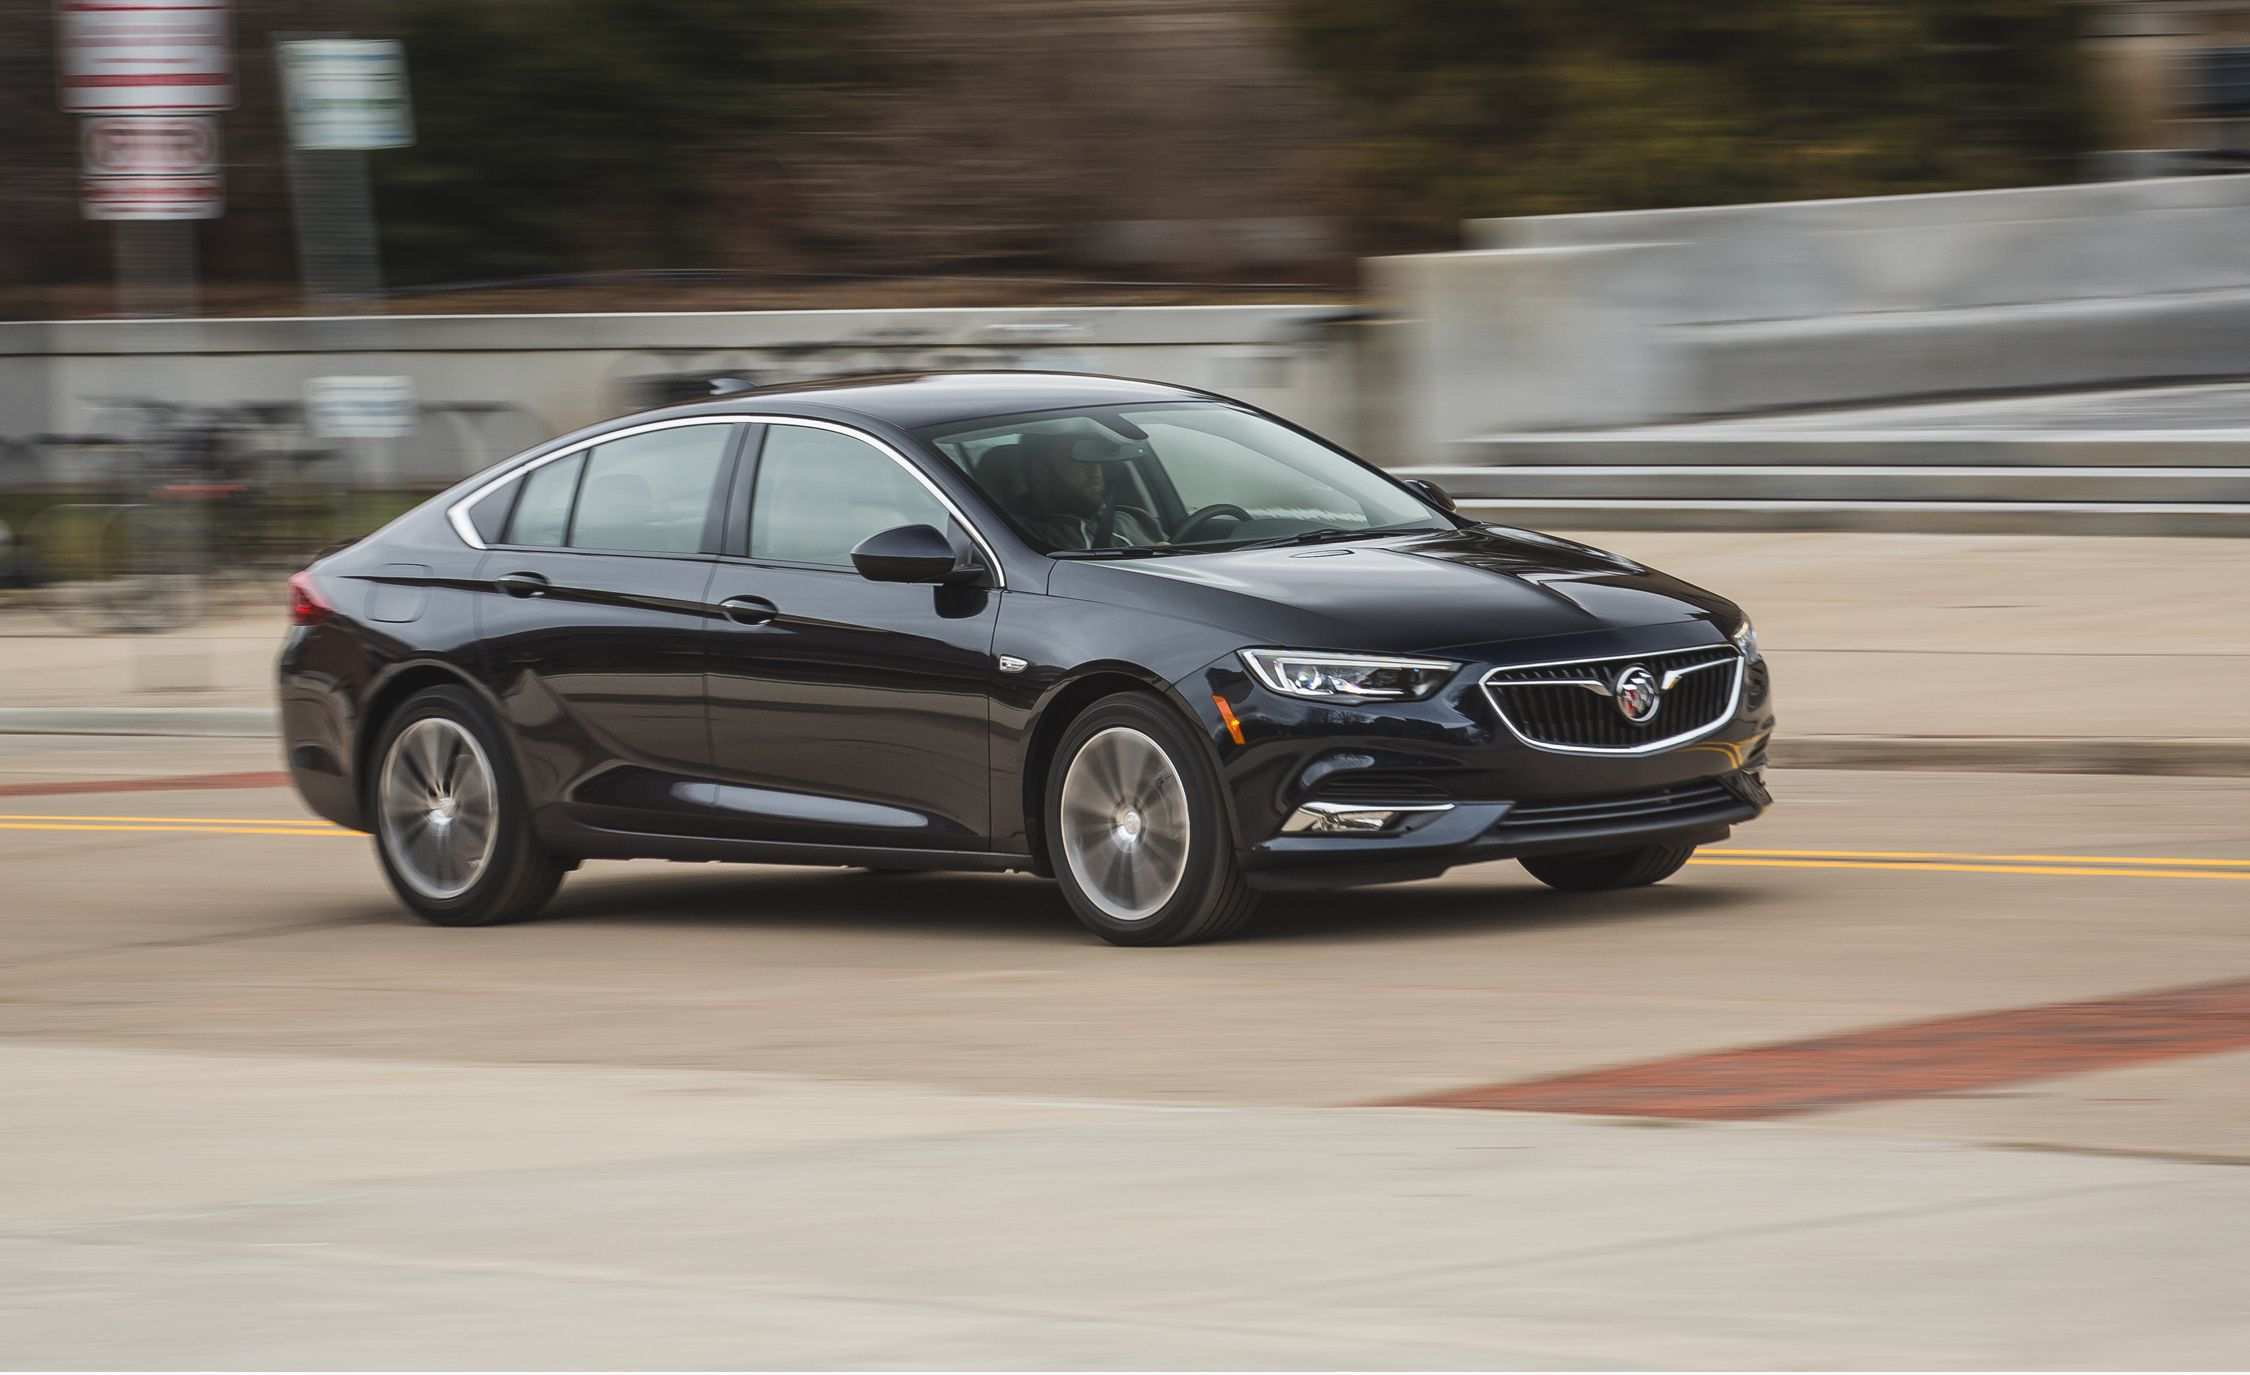 63 Great New Buick Lineup 2019 Release Date Specs and Review by New Buick Lineup 2019 Release Date